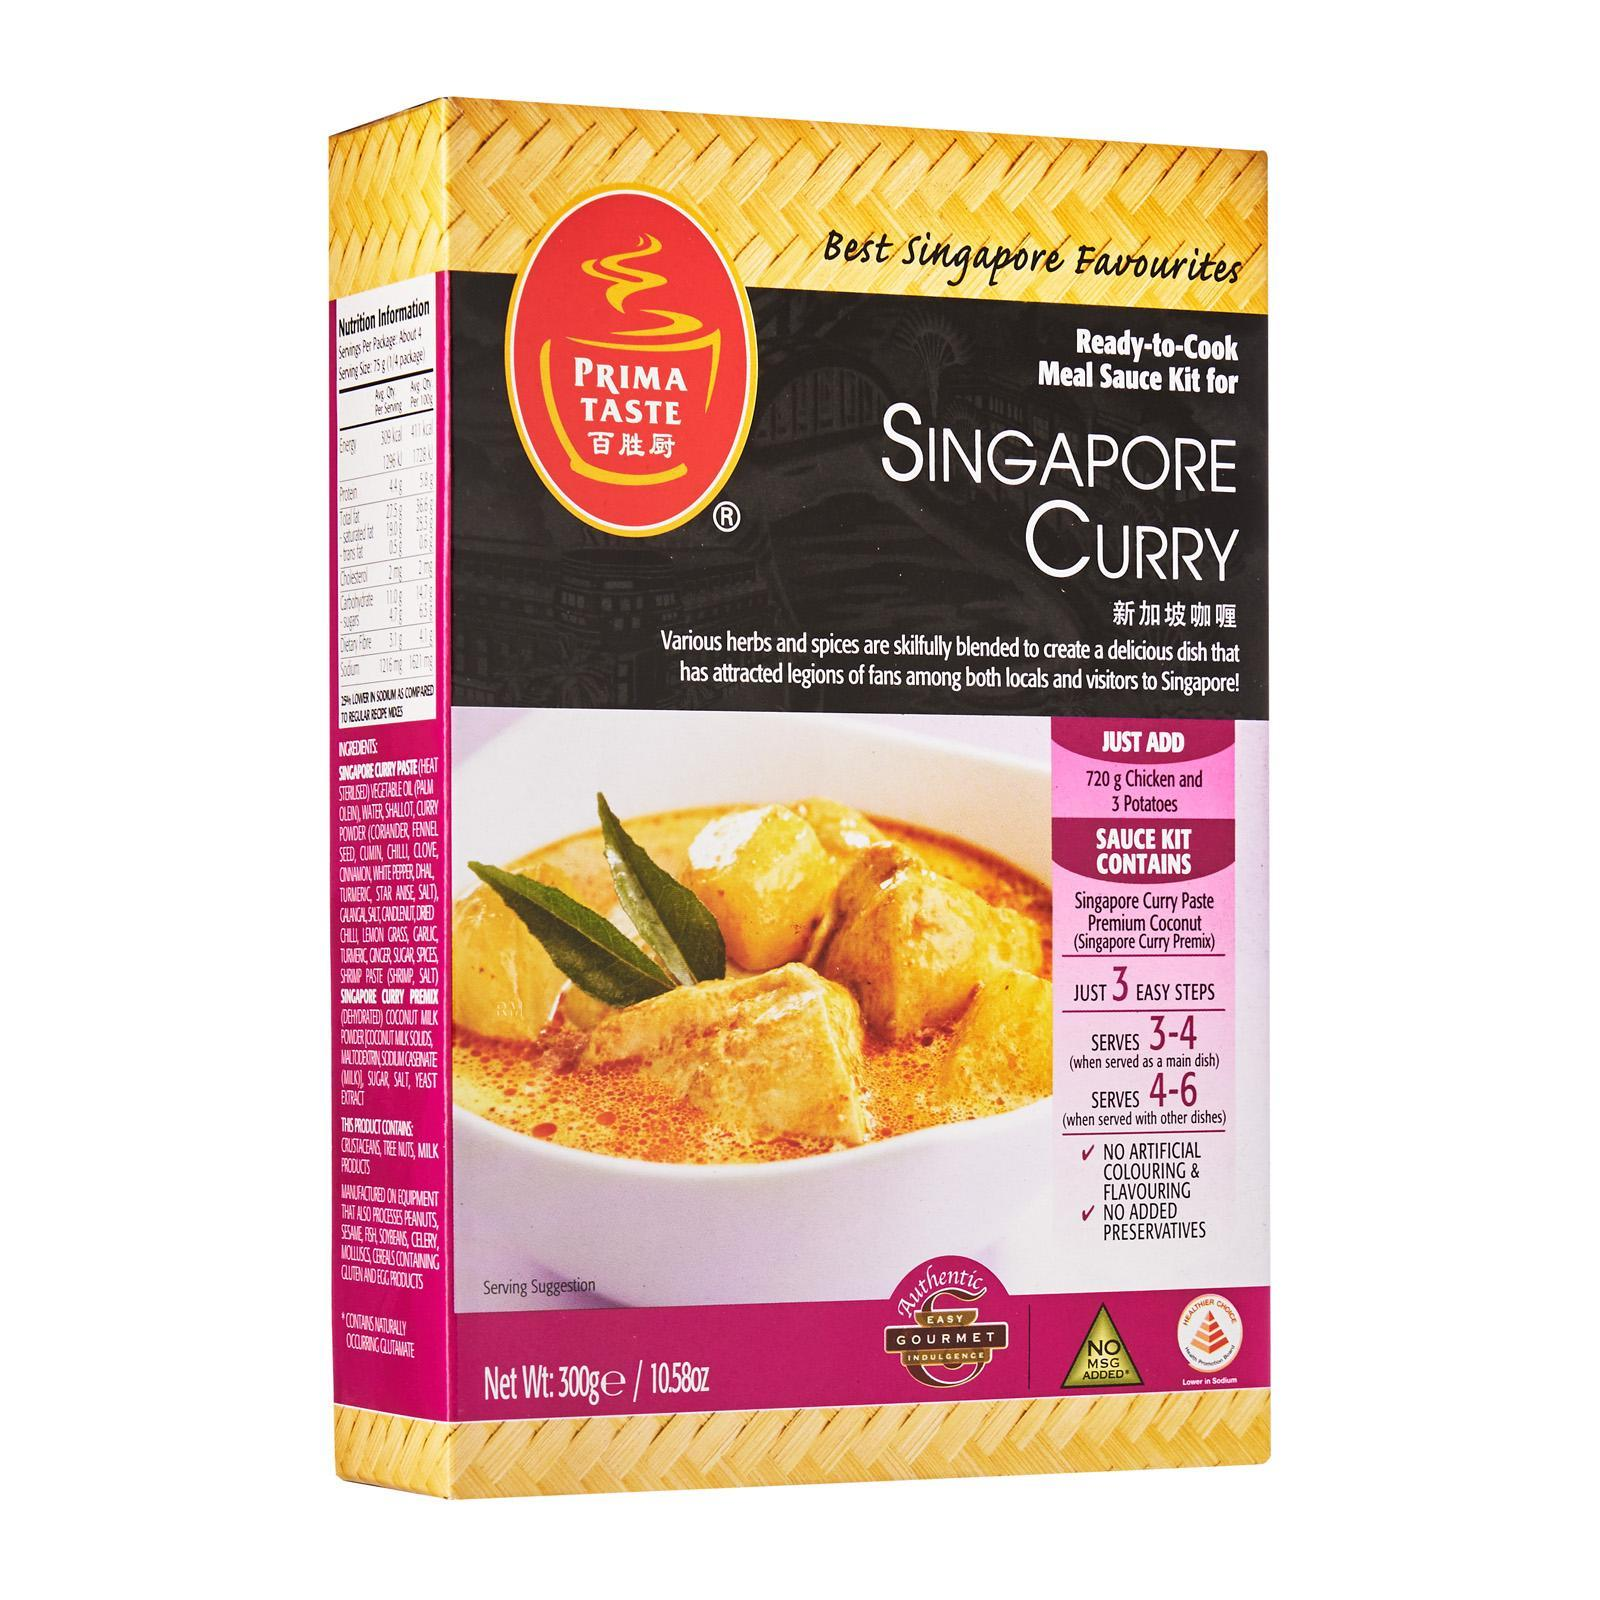 Prima Taste Singapore Curry Ready-to-Cook Sauce Kit